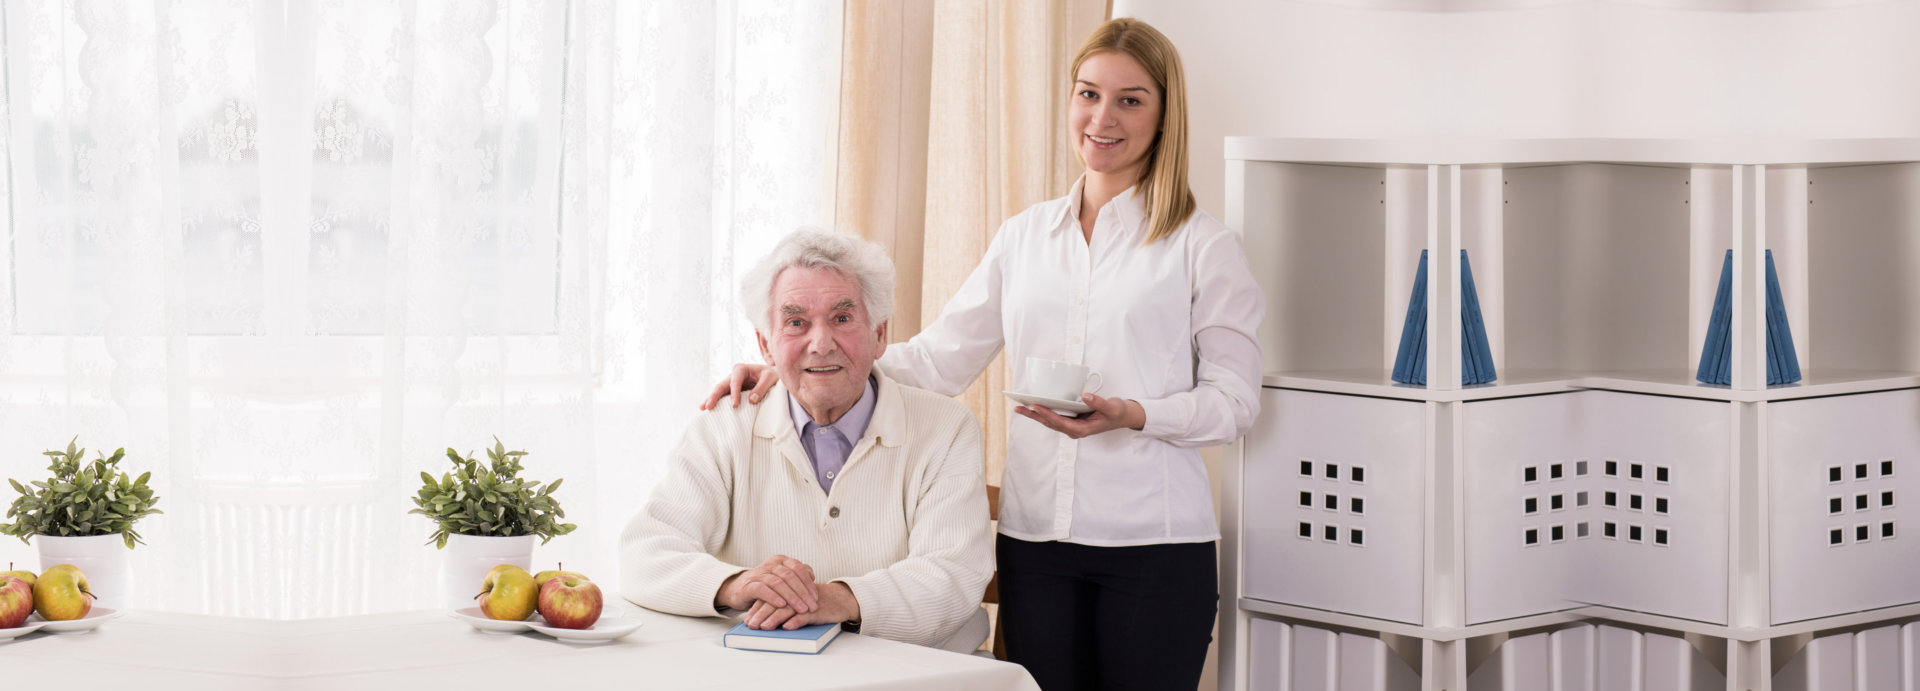 old man showing his genuine smile while the caregiver holding a cup of tea